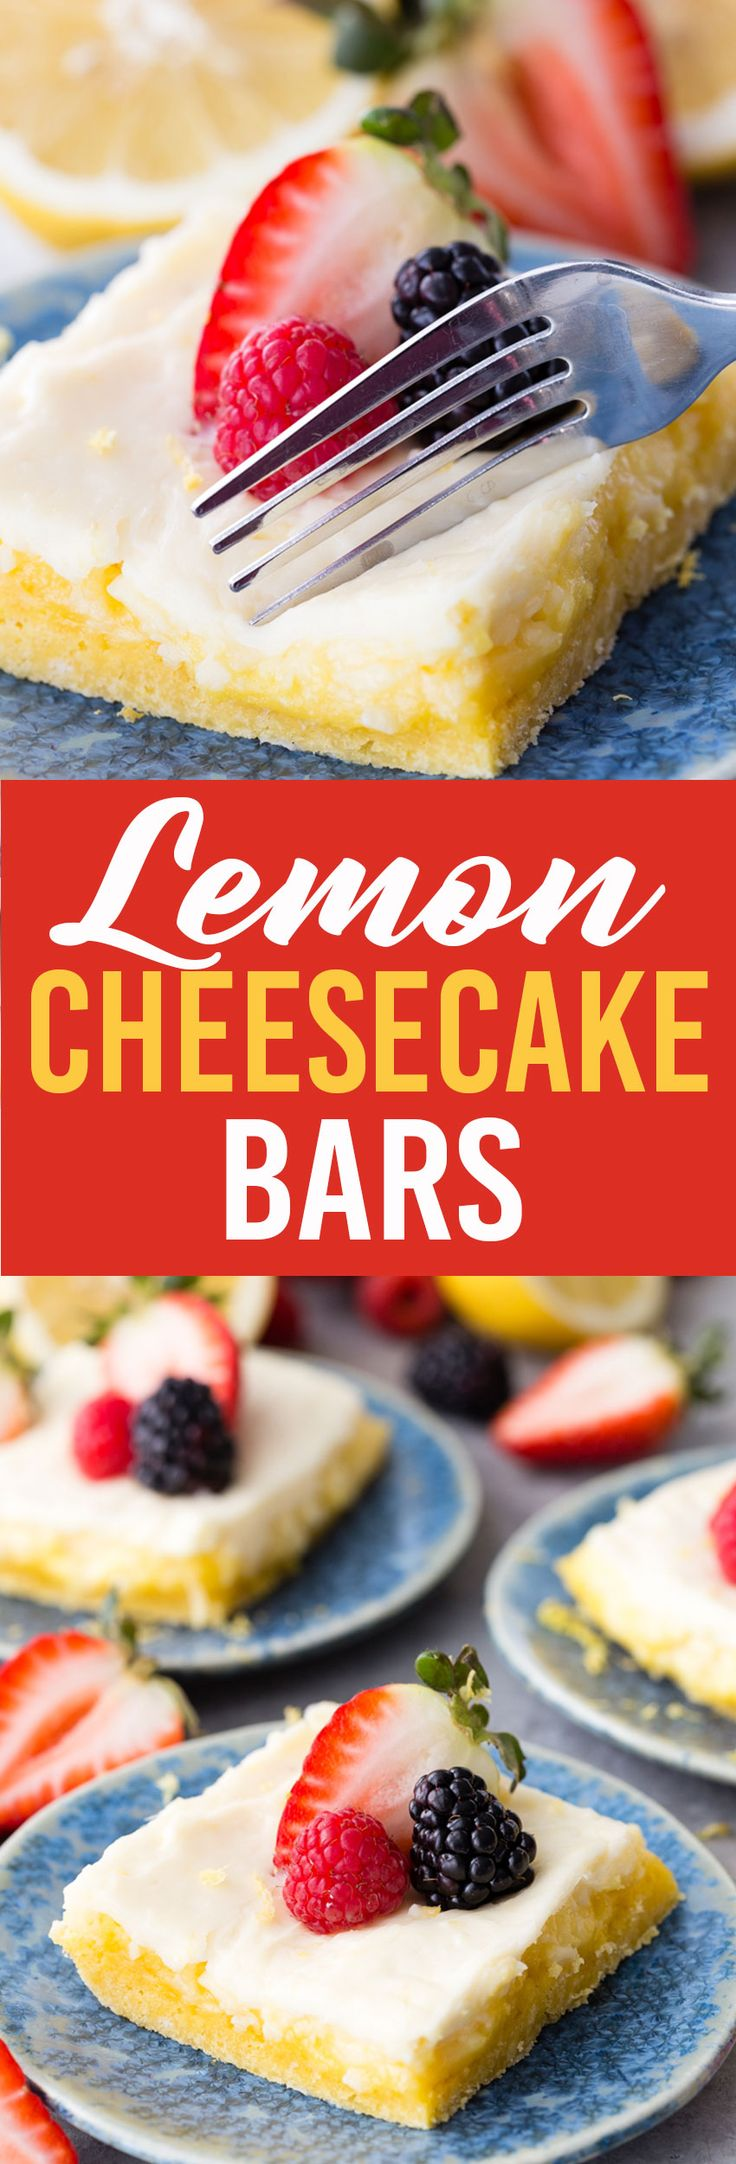 Easy lemon cheesecake bars that start with a boxed cake mix, but are better than the box. #savealotinsiders #ad @savealot